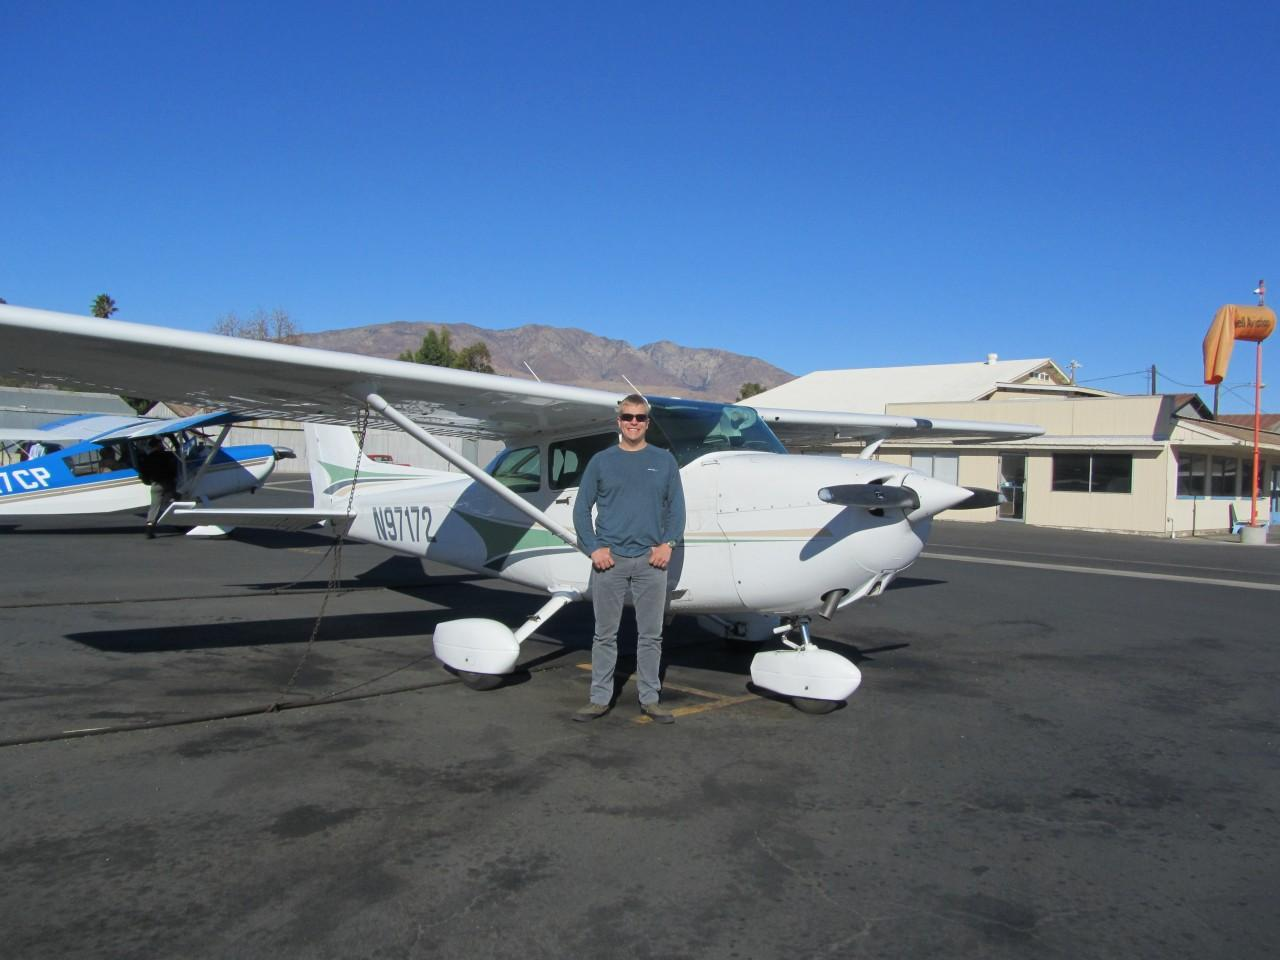 Sam Thorvilson - First Solo & Private Pilot!